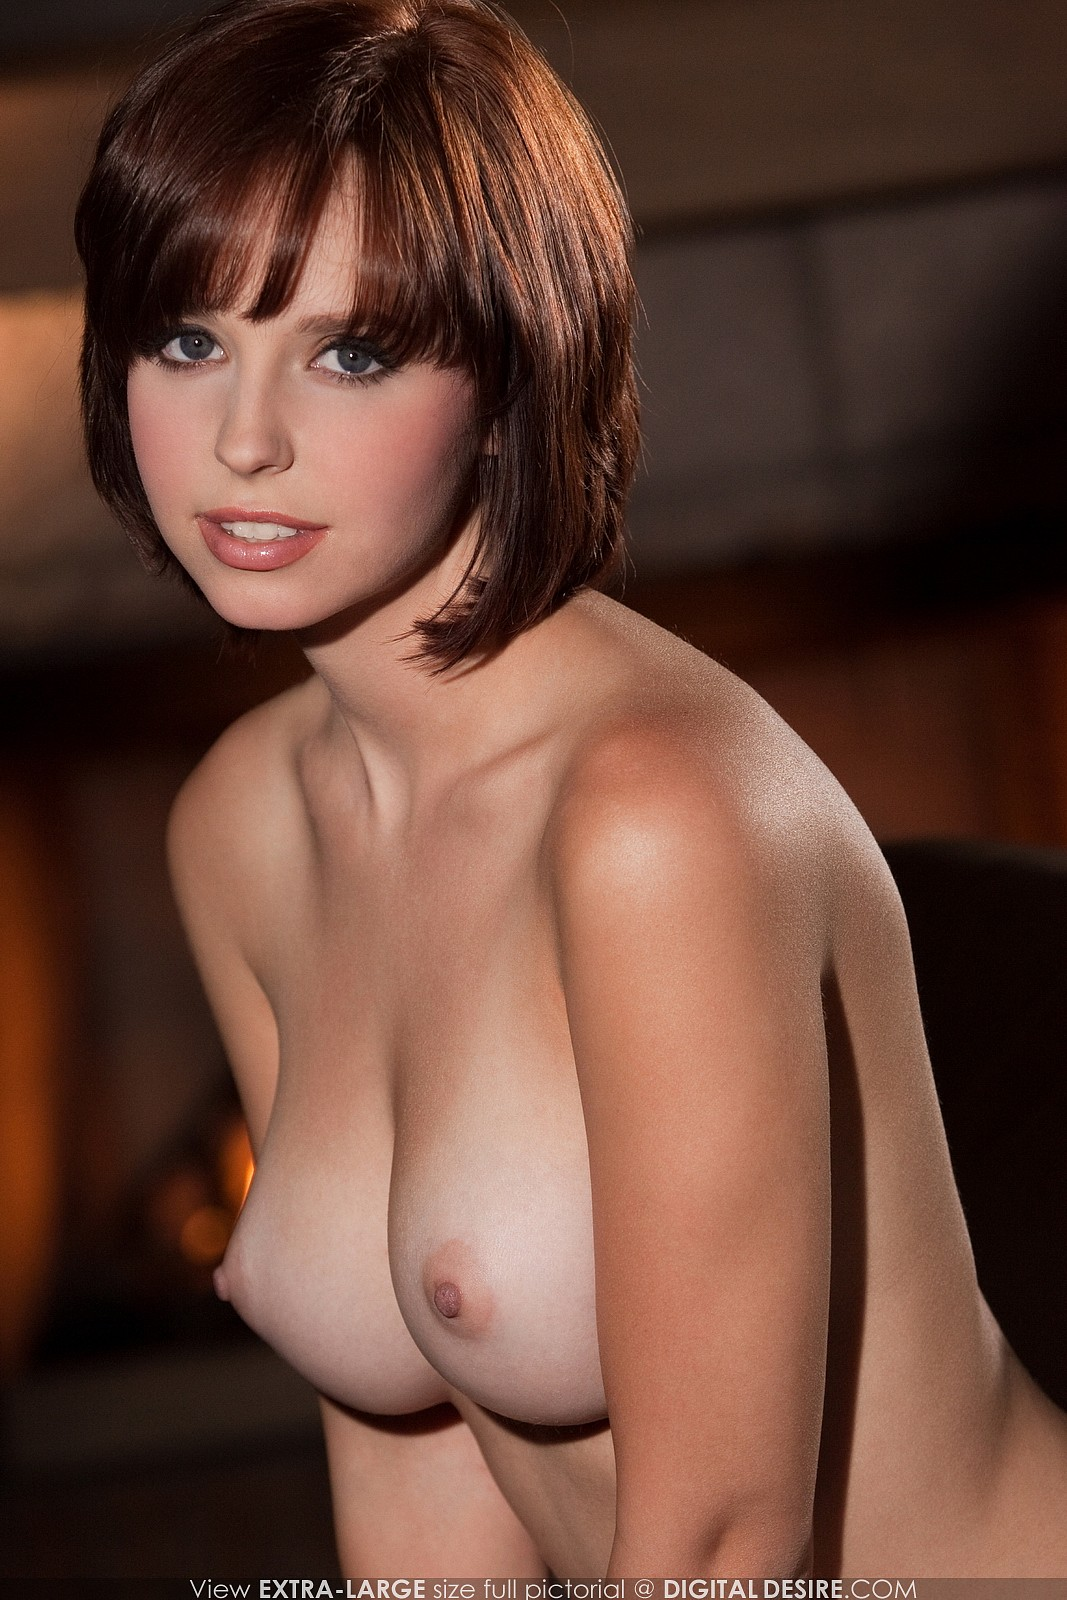 nude girl no bra perky